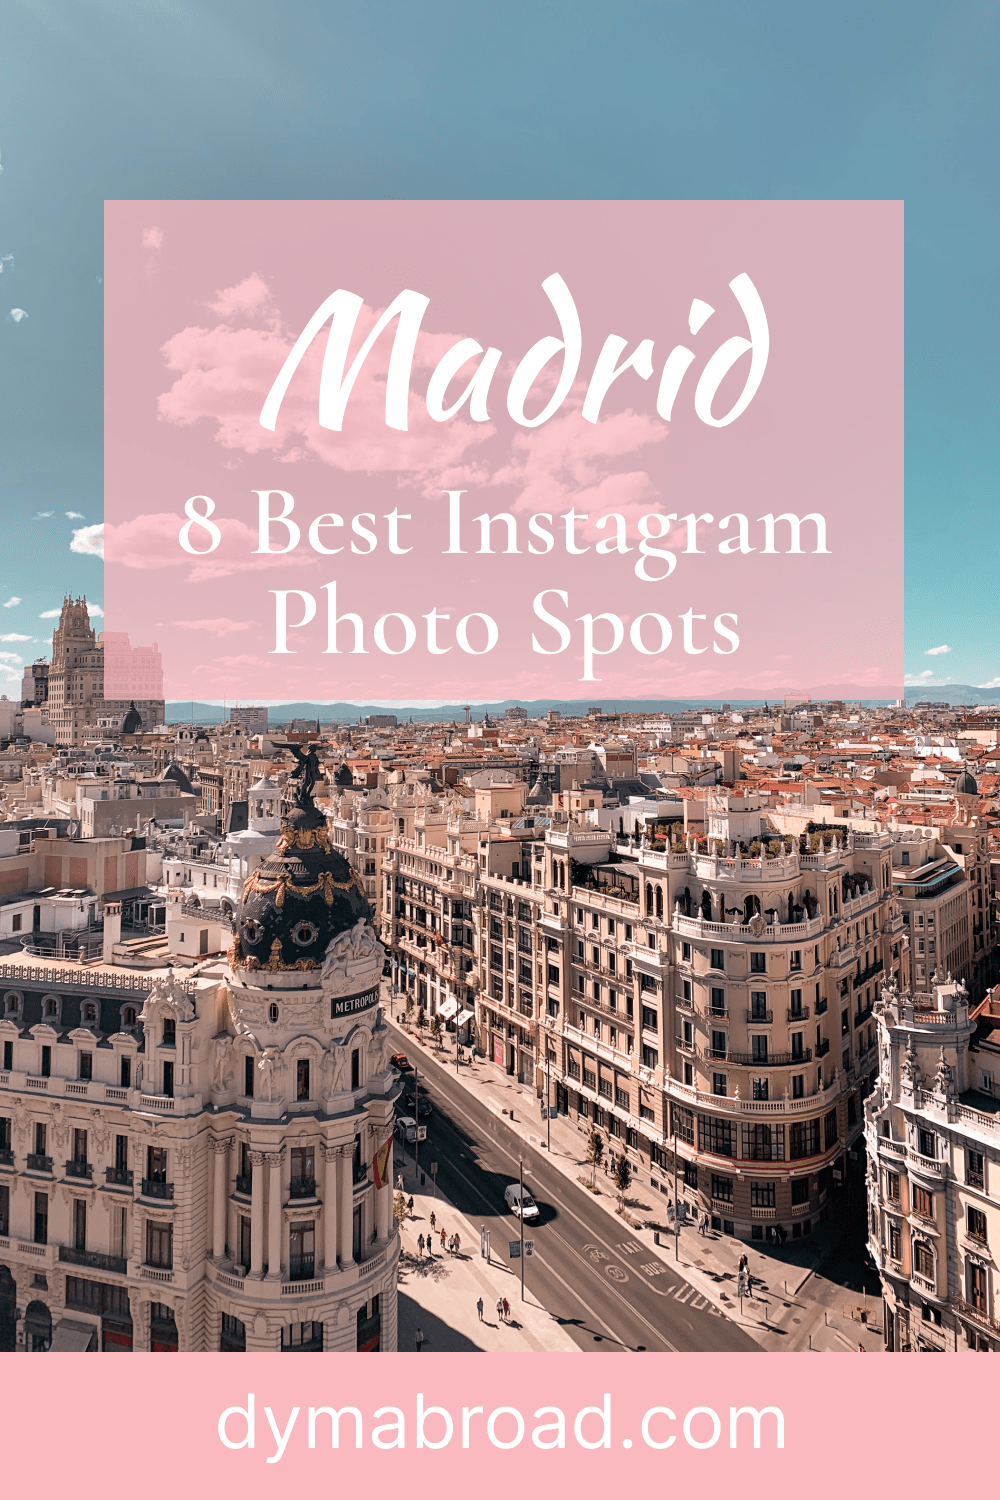 Instagram photo spots in Madrid Pinterest image